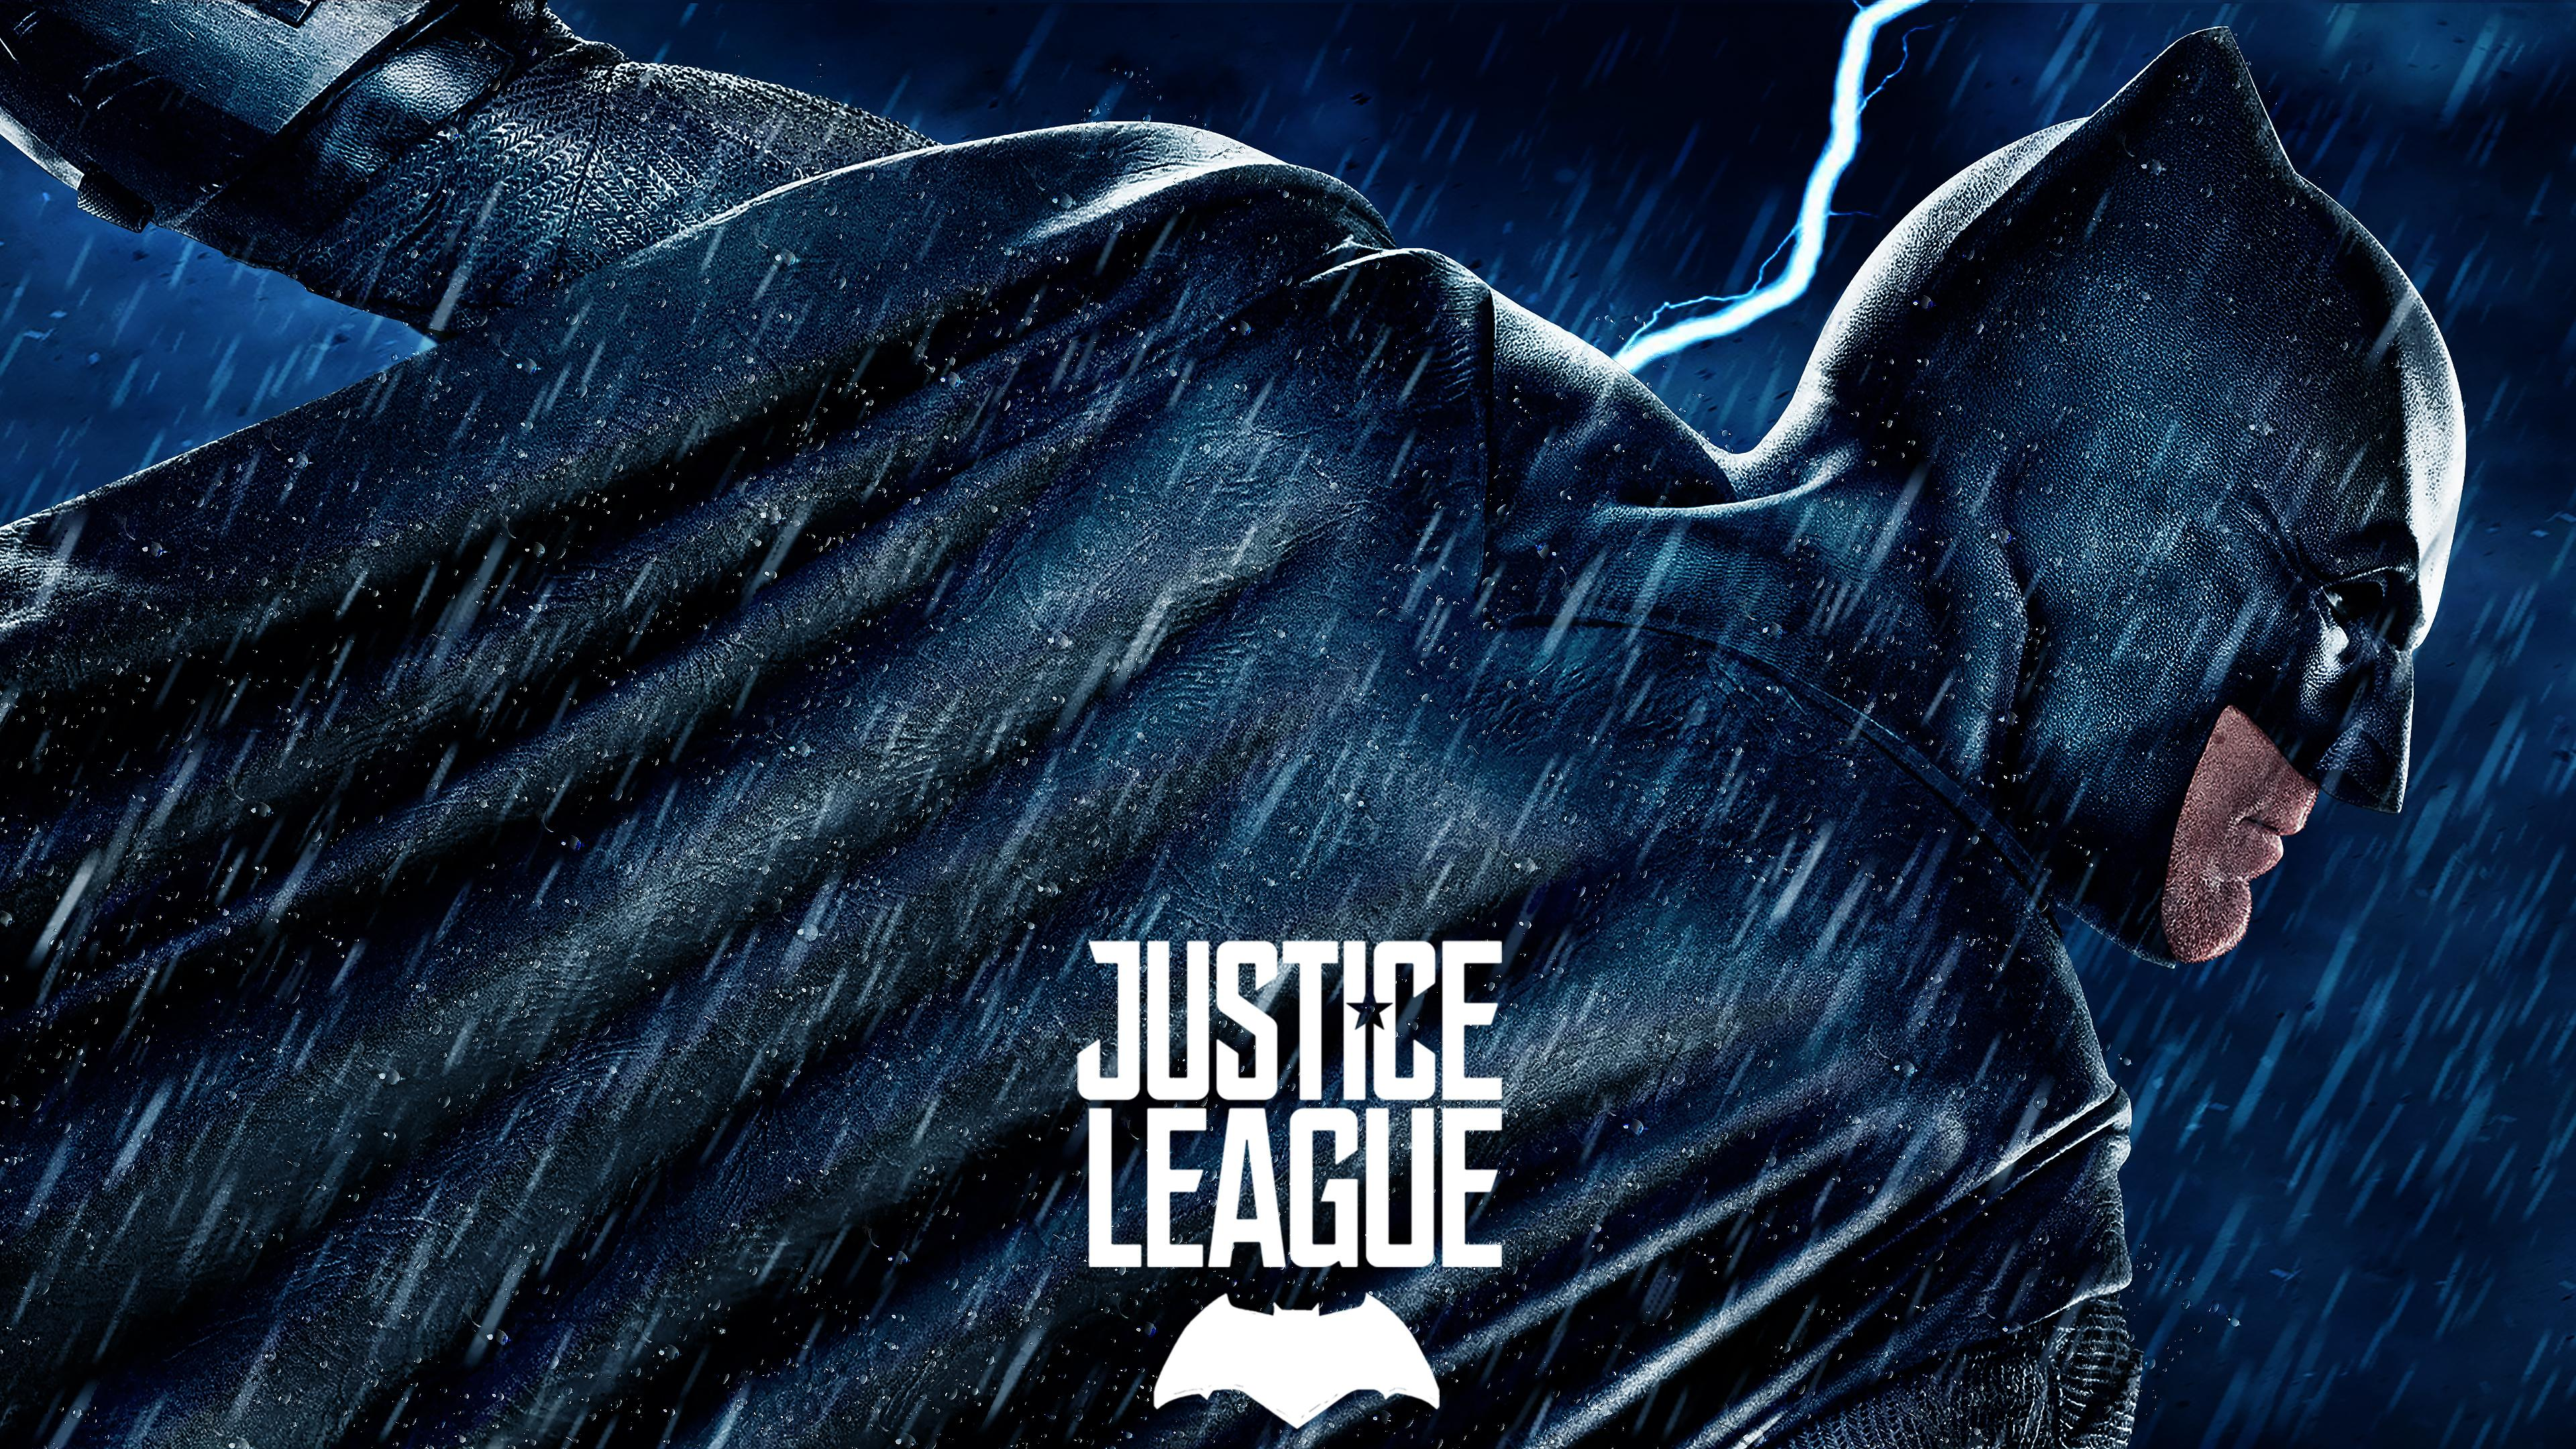 Batman Justice League 4k 2017 Hd Movies 4k Wallpapers Images